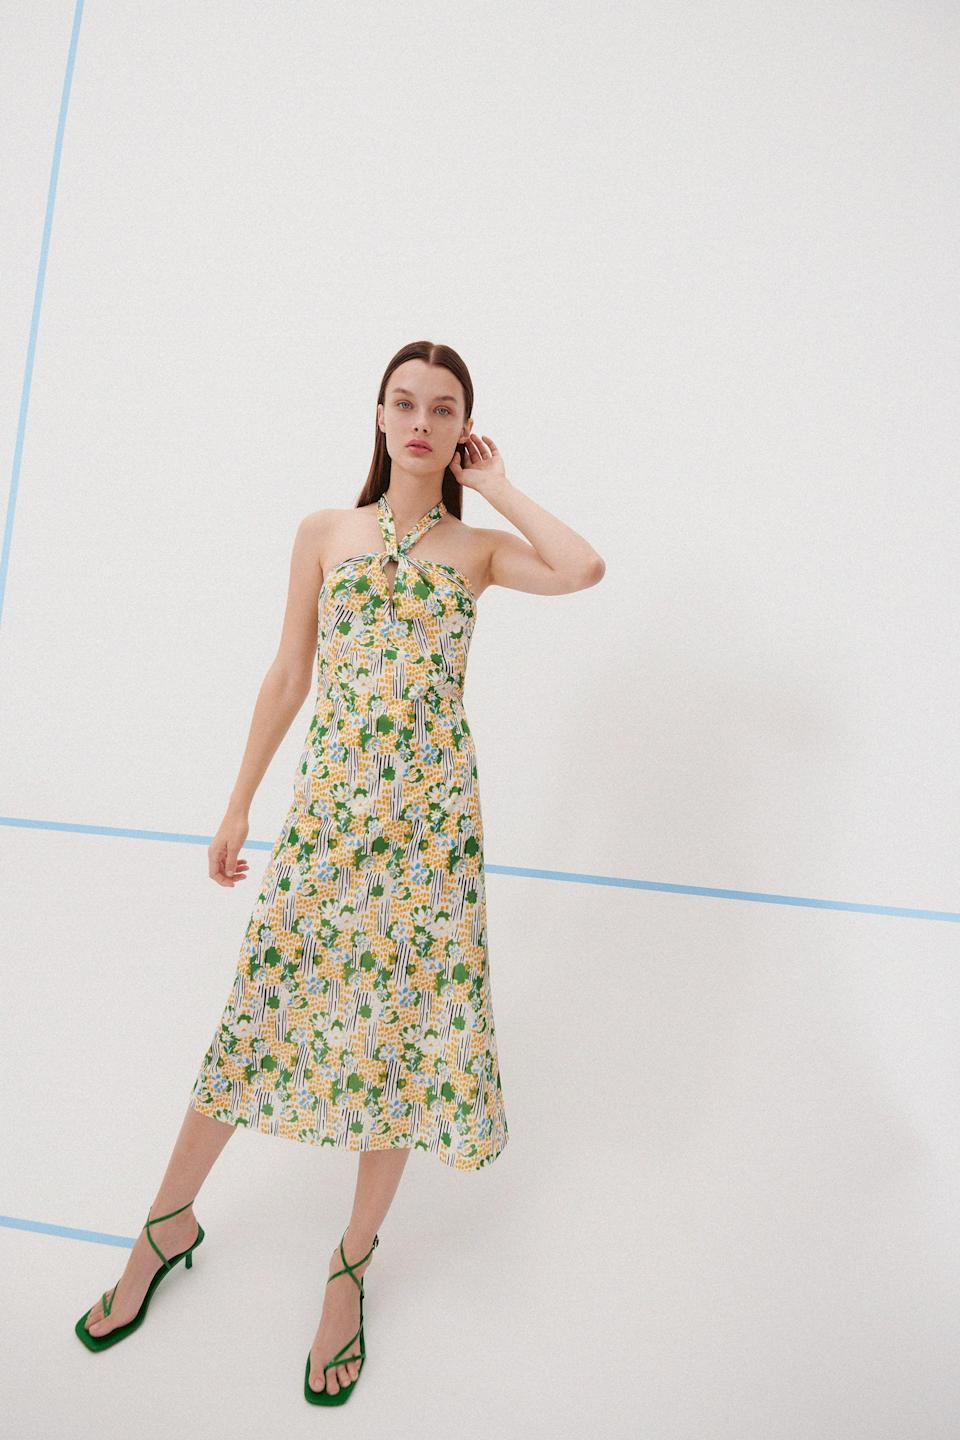 <p>Slipping into this <span>Print Dress</span> ($36) is an easy to look polished without trying.</p>